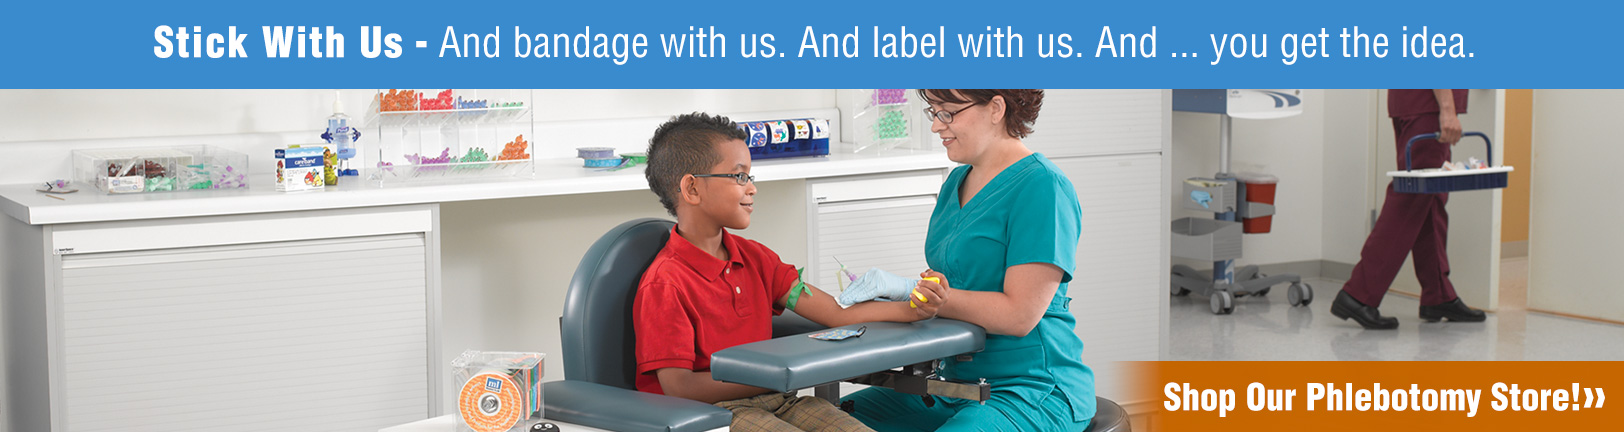 Shop Our Phlebotomy Store!